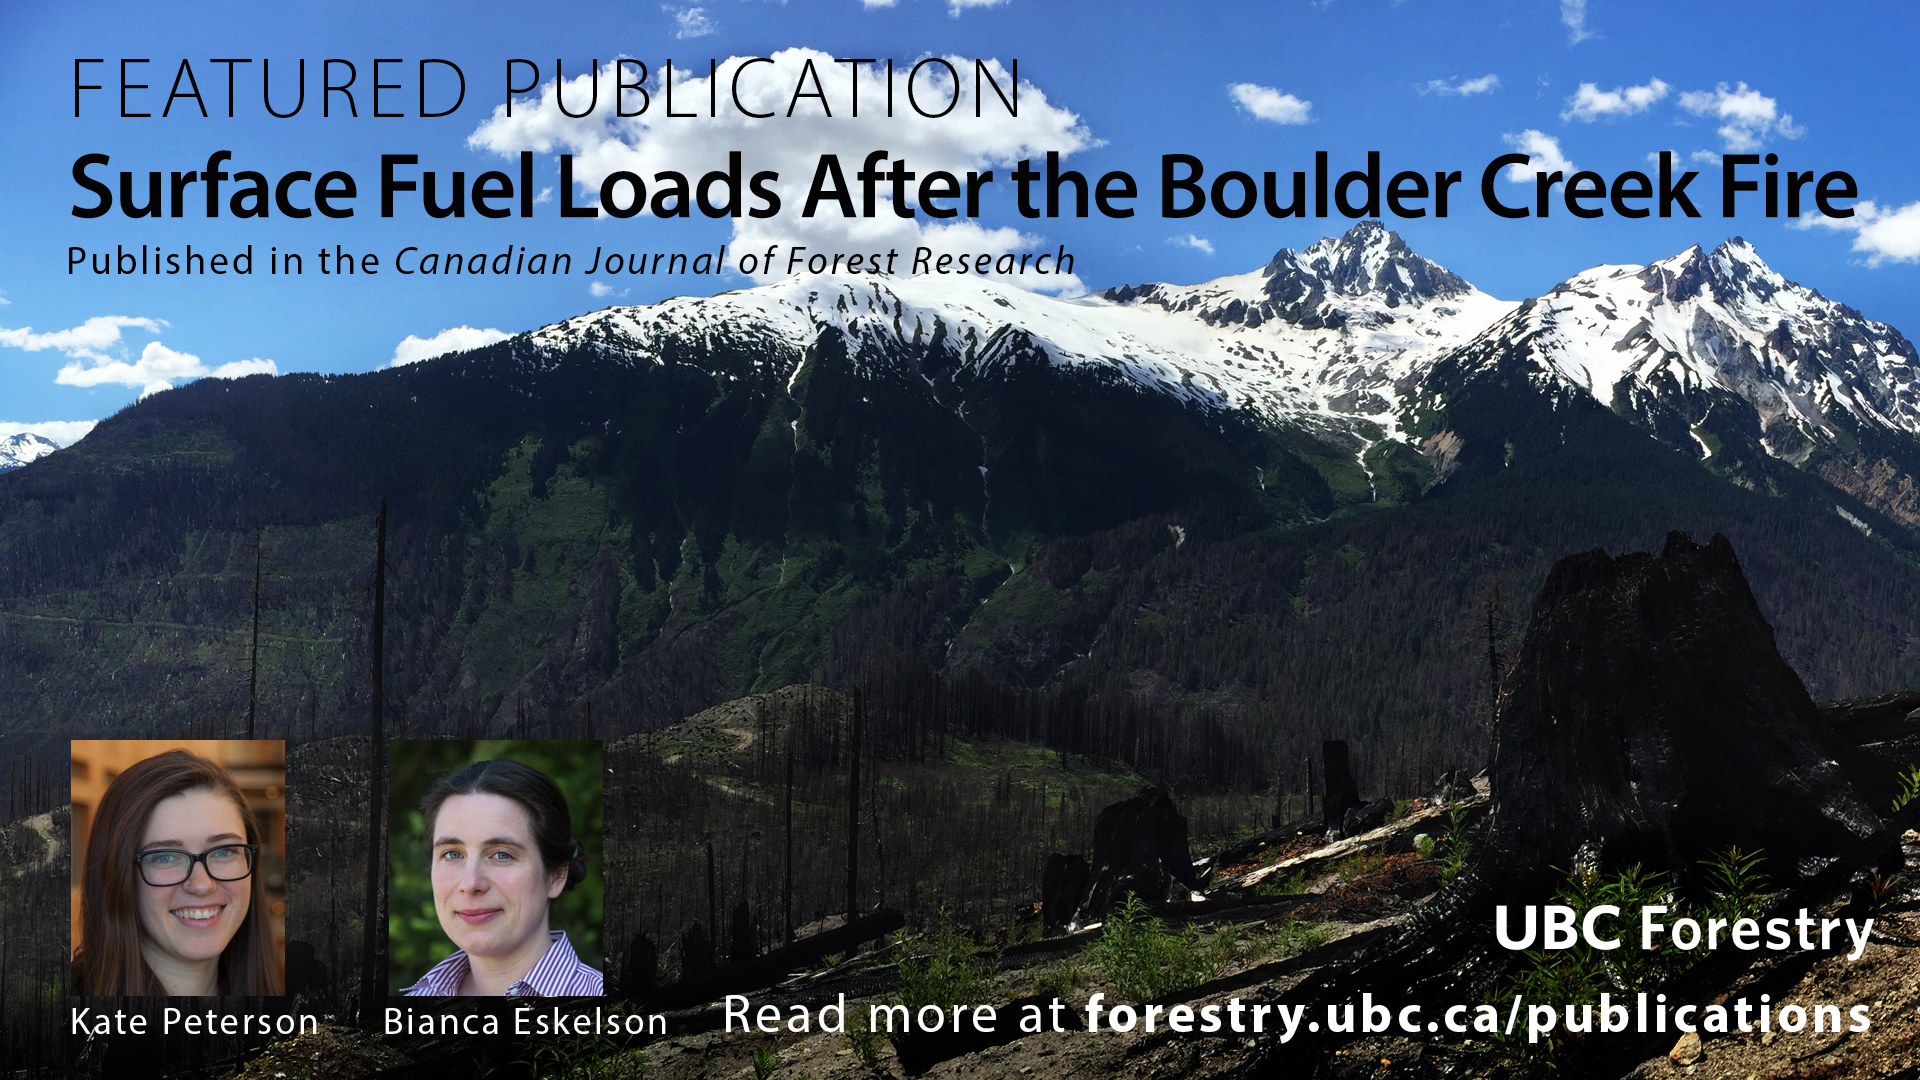 Surface Fuel Loads after the Boulder Creek Fire